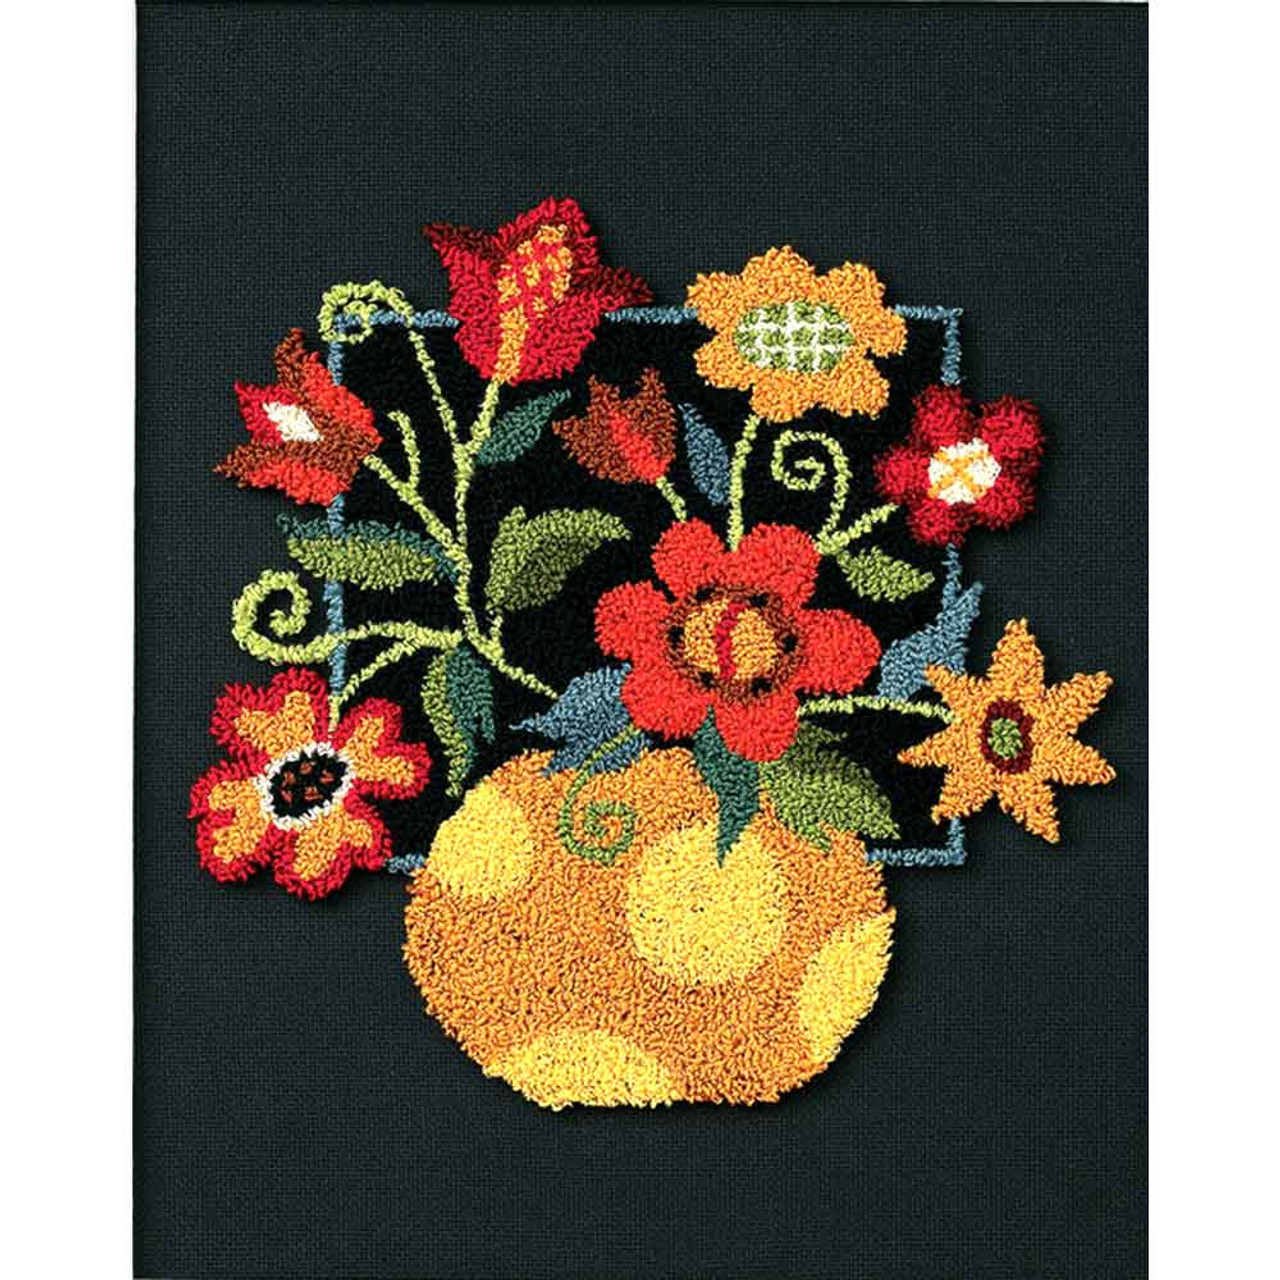 Floral on Black | Punch Needle Kit